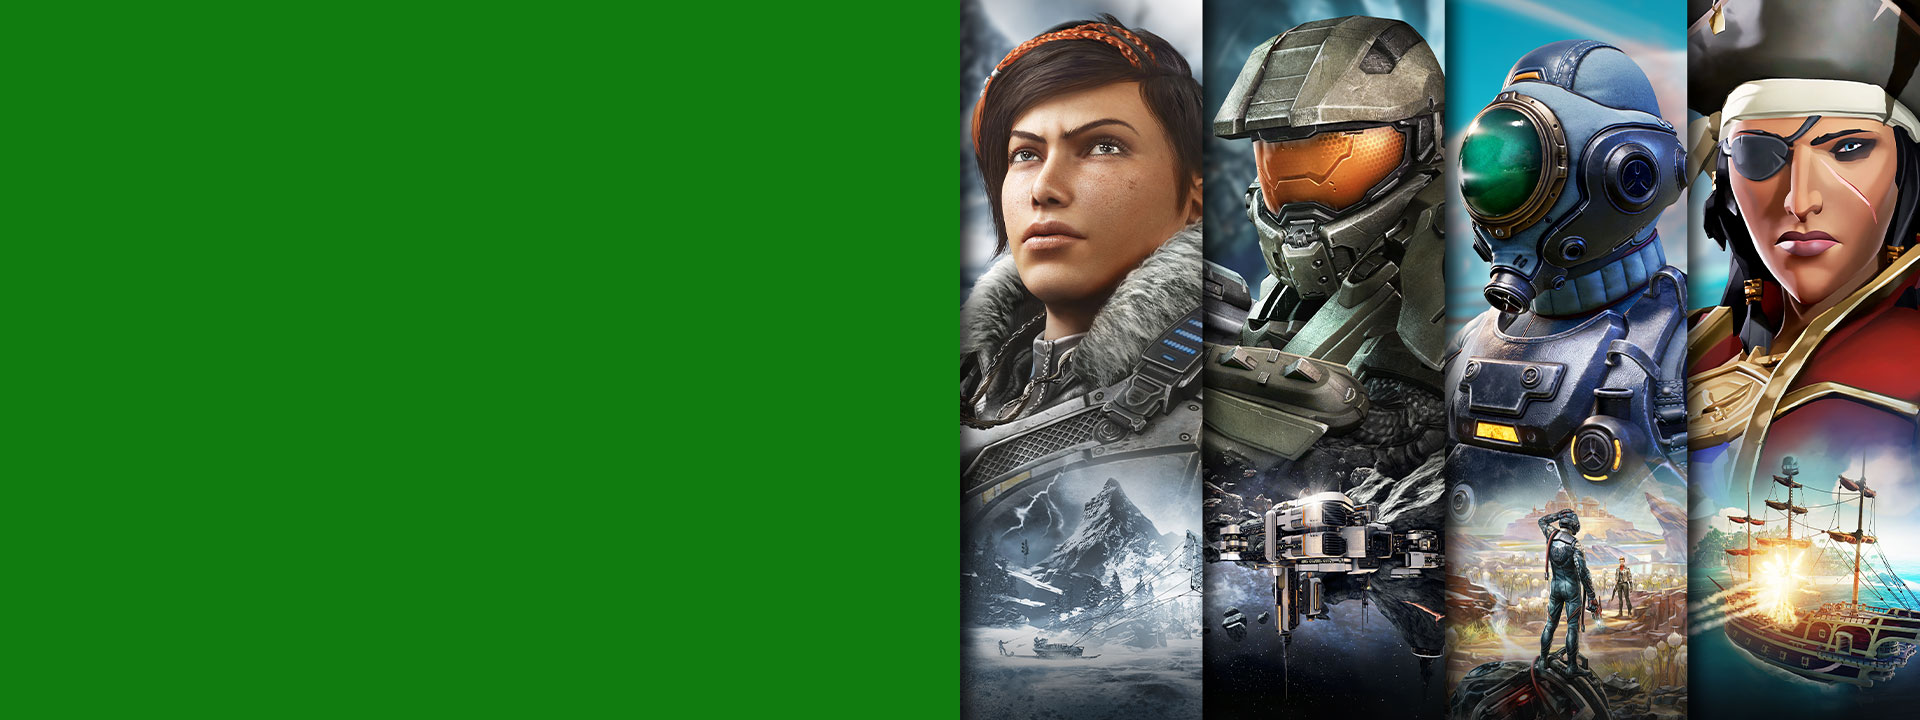 Xbox Game Pass game characters from Gears 5, Halo, The Outer Worlds, and Sea of Thieves.